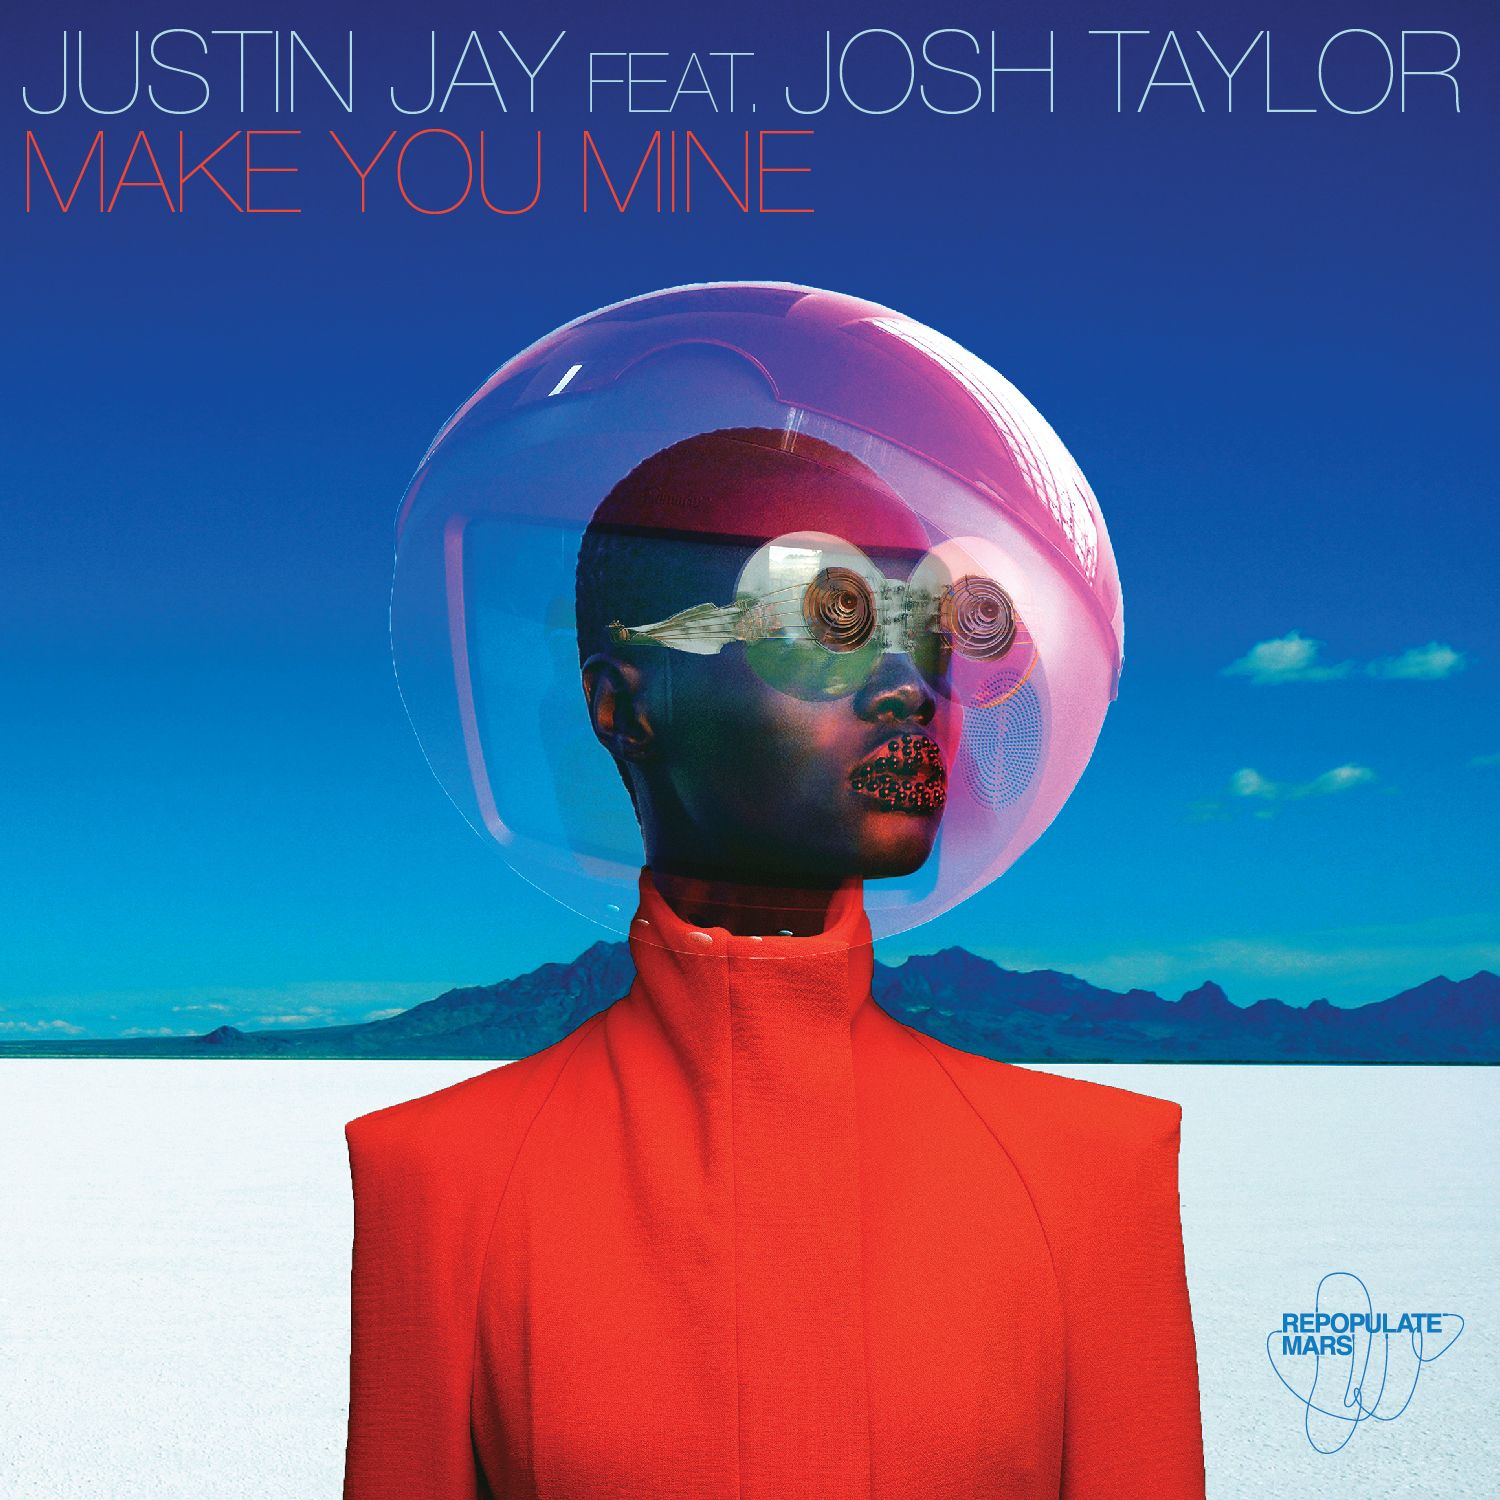 pack_shot_justin_jay_featuring_josh_taylor_-_make_you_mine_ep_-_repopulate_mars.jpg